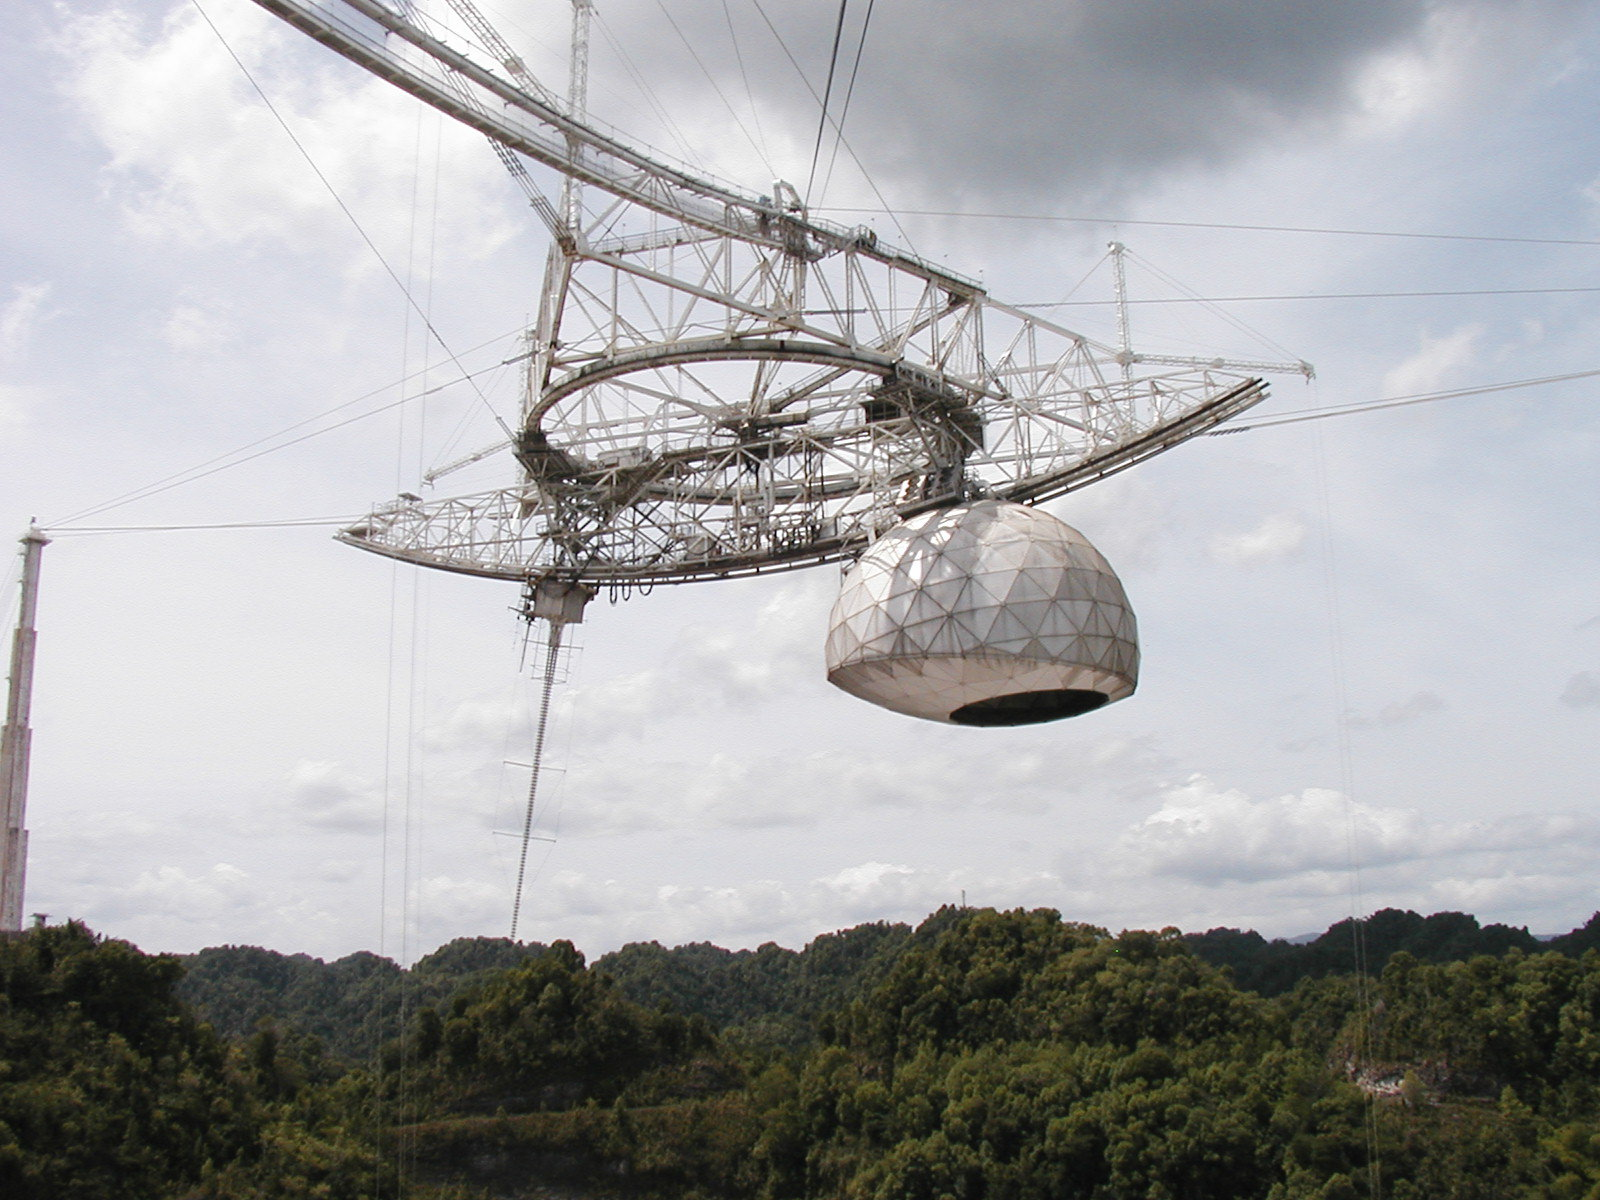 https://planetary.s3.amazonaws.com/web/assets/pictures/20121003_Gregorian_dome_Arecibo.jpg